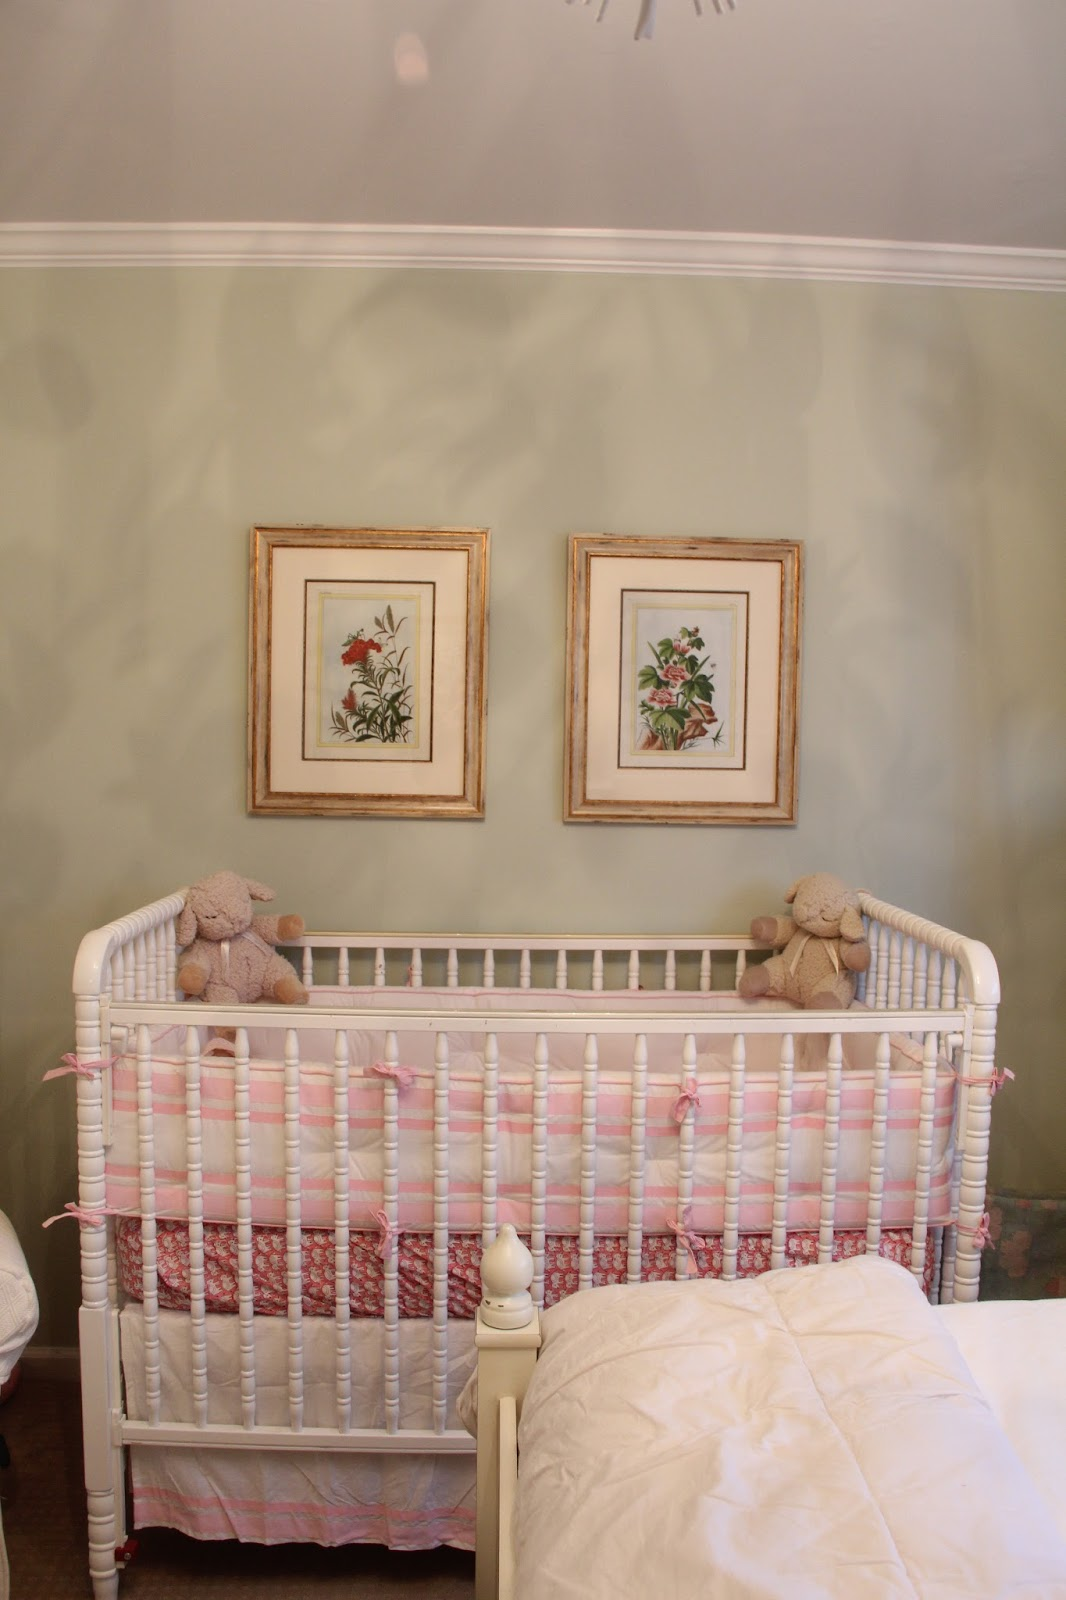 Baby cribs on craigslist - Jenny Lind Crib Off Craigslist Pottery Barn Bumper And Skirt Roberta Roller Rabbit Crib Sheet I Have Since Removed The Bumper And Added A Pink Breathable